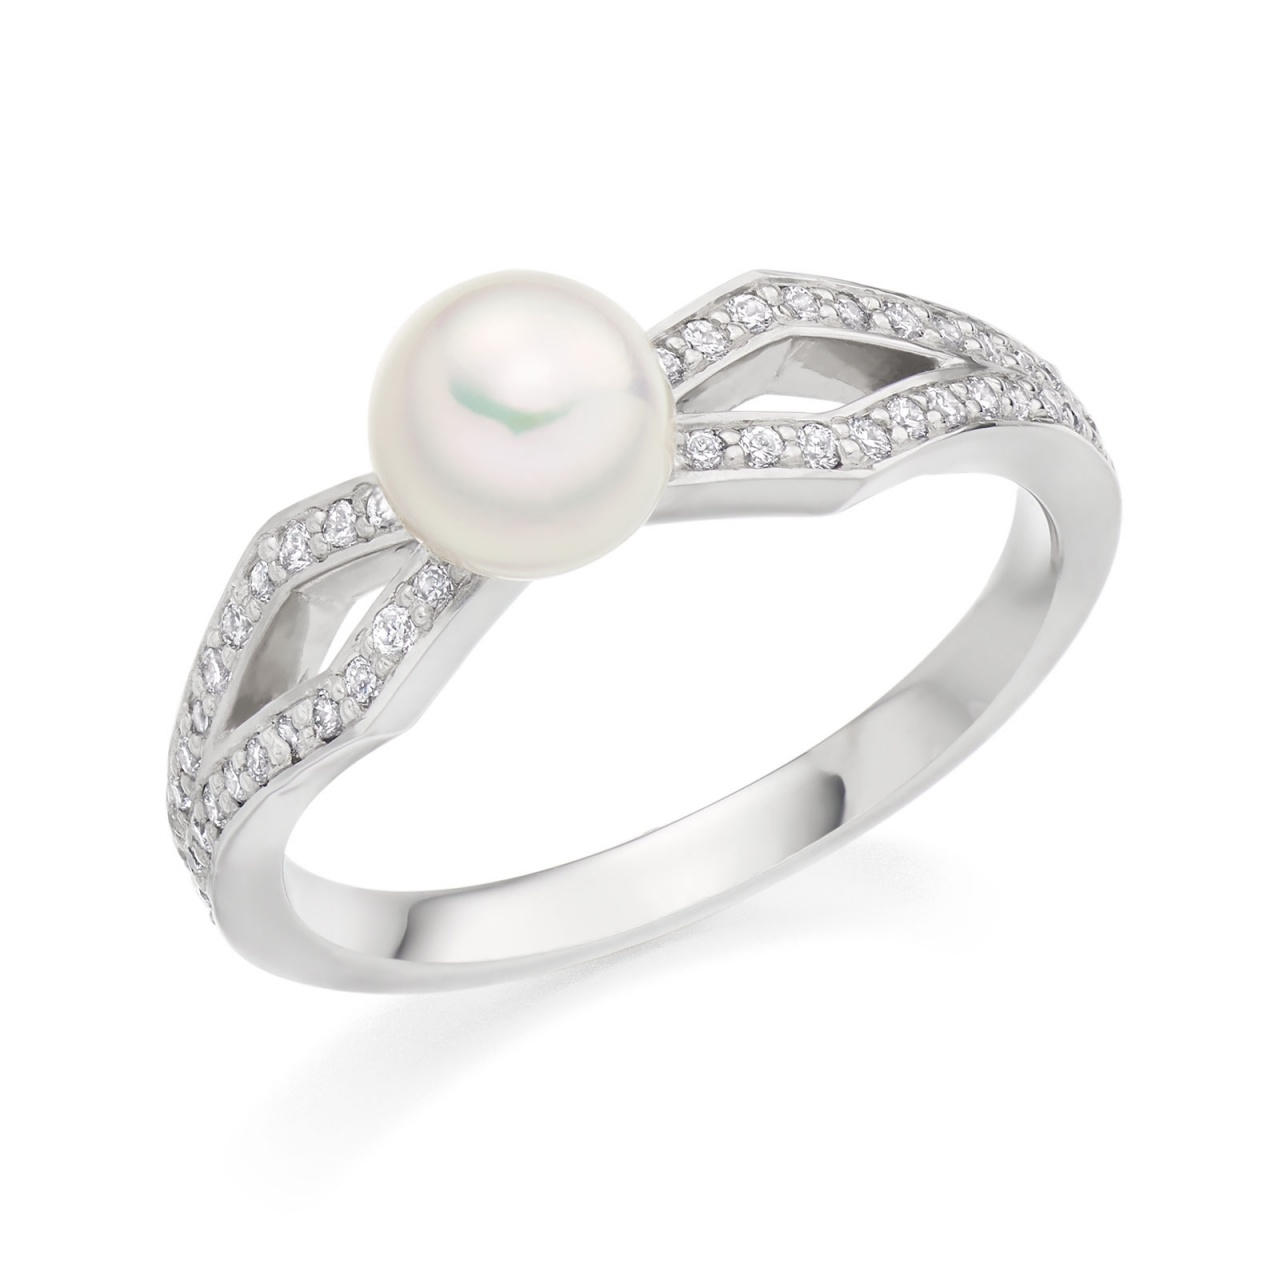 Zigzag Diamond and Akoya Pearl Ring in White Gold-ARWRWG0832-1